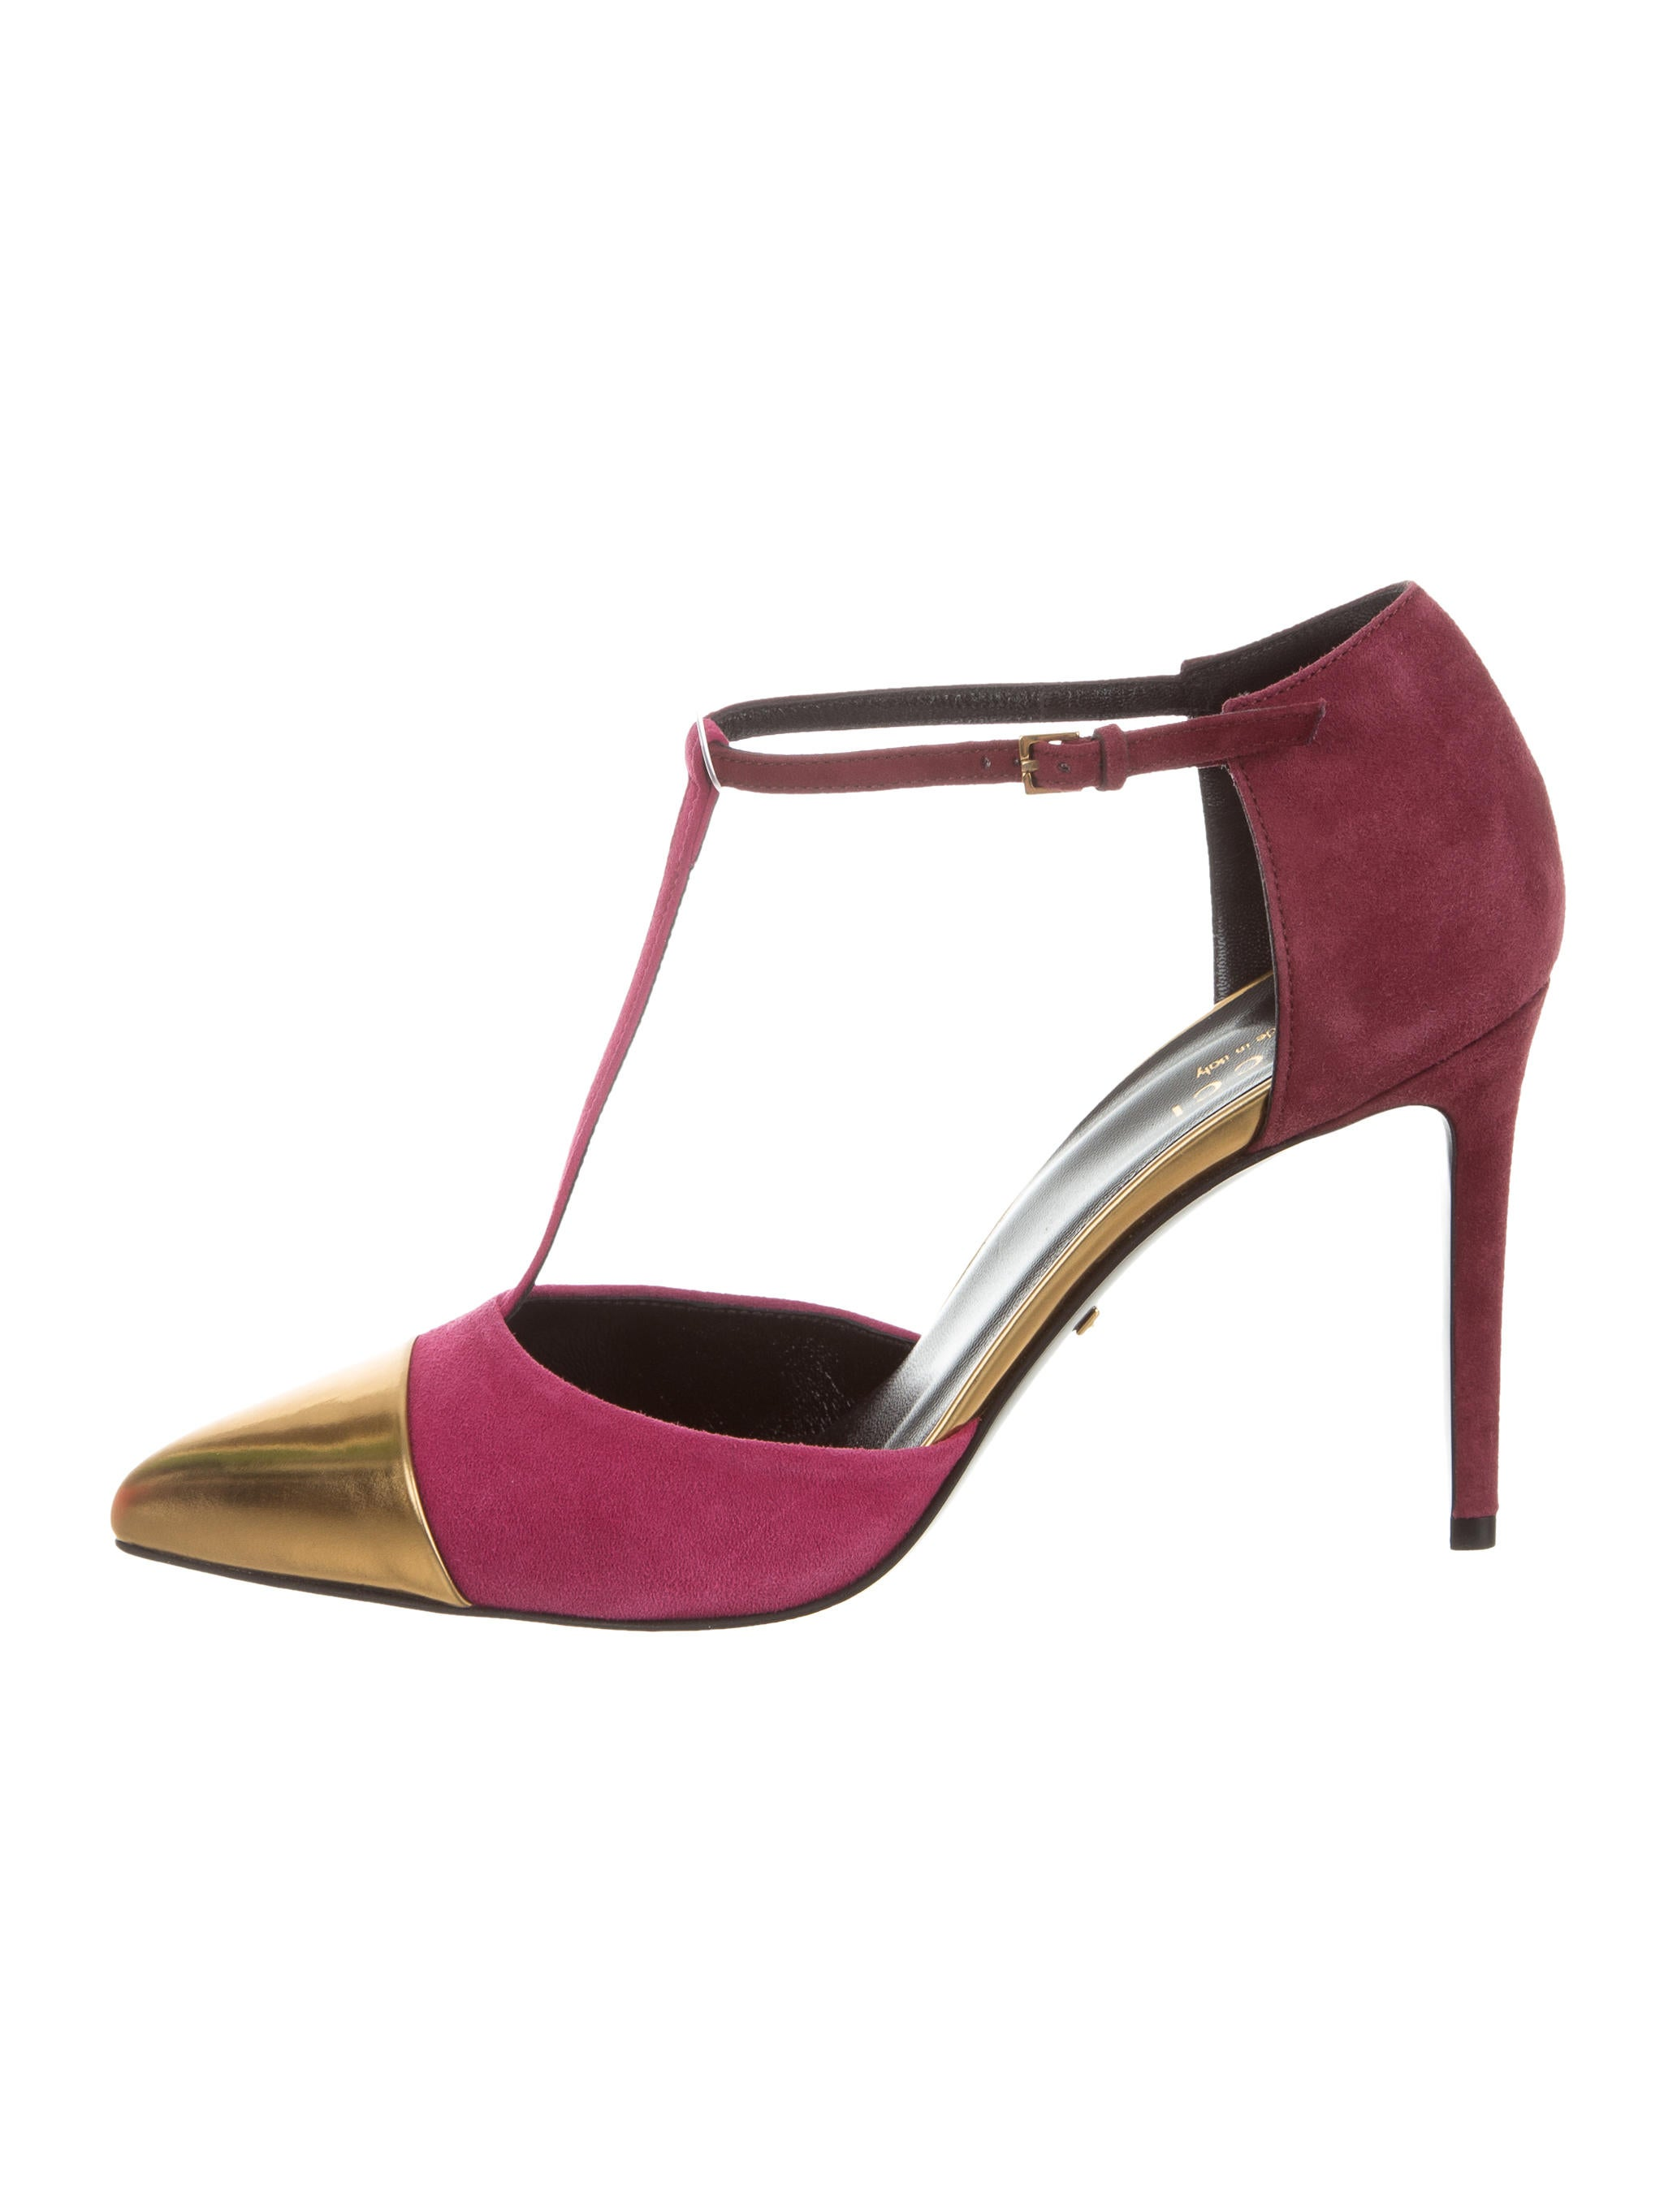 41ca52c07596b Gucci Coline T-Strap Pumps w/ Tags - Shoes - GUC150299 | The RealReal